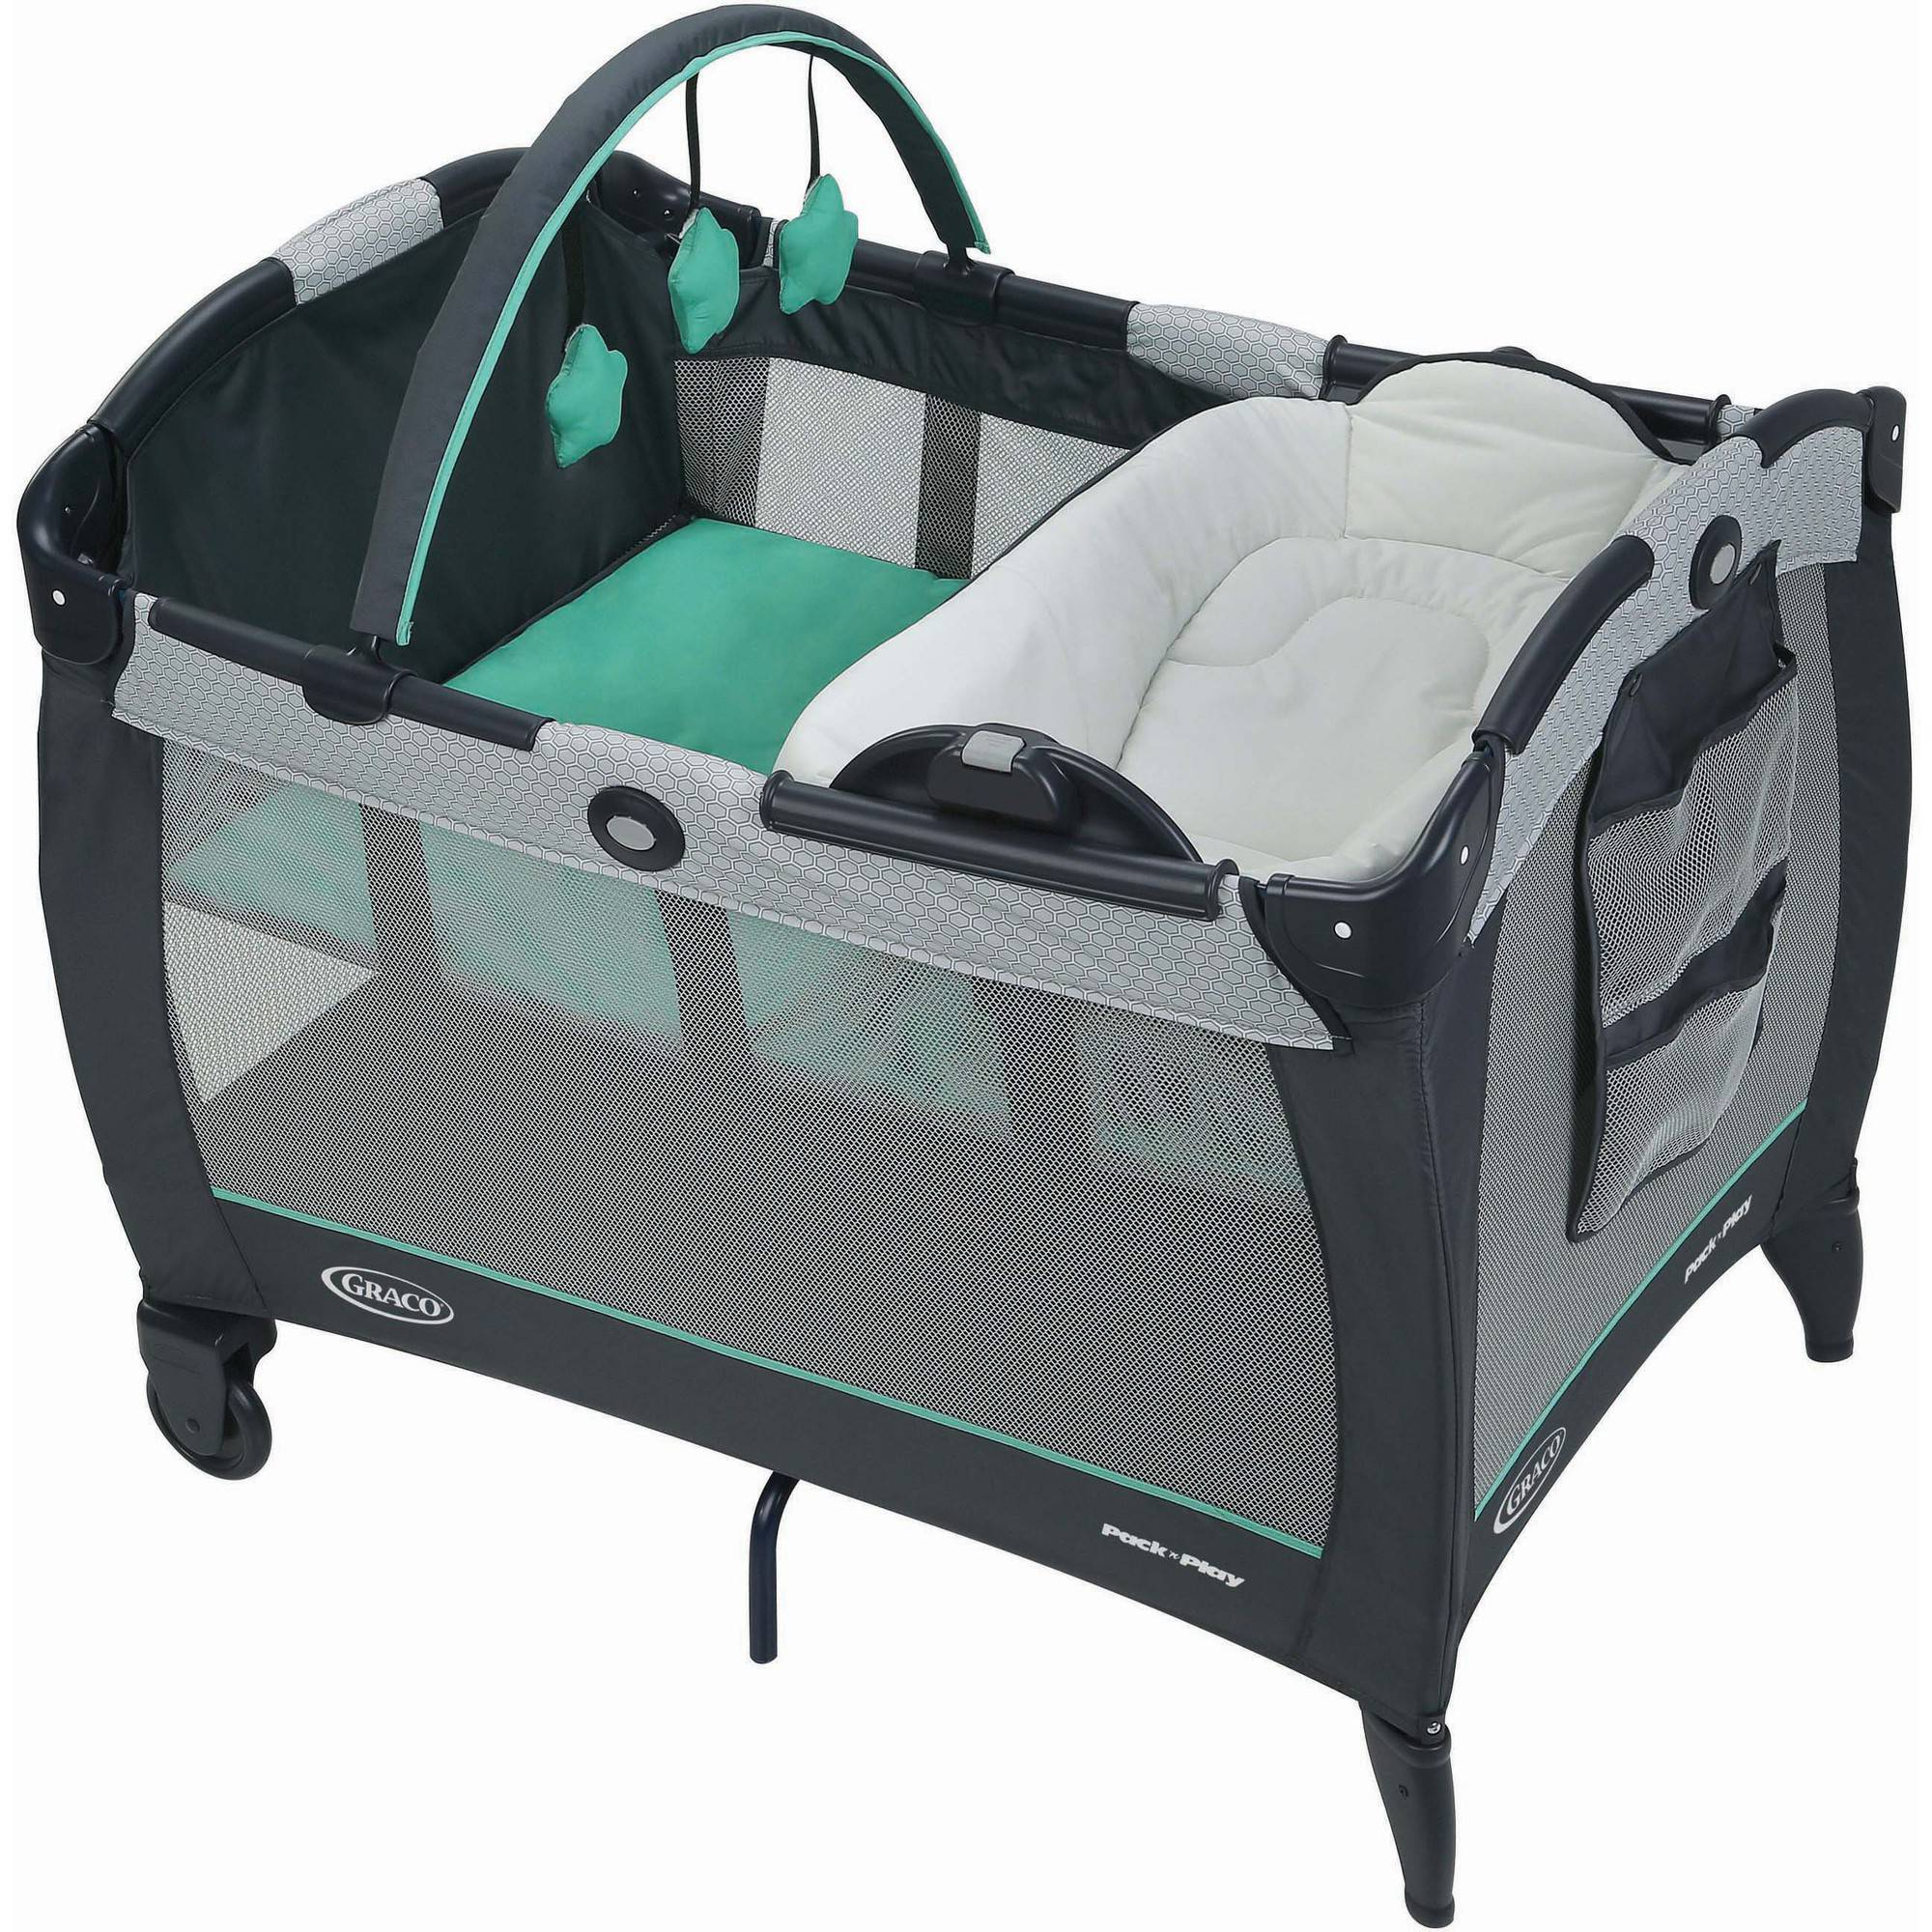 Graco Pack 'n Play Play Pen Reversible Napper and Changer, Basin by Graco